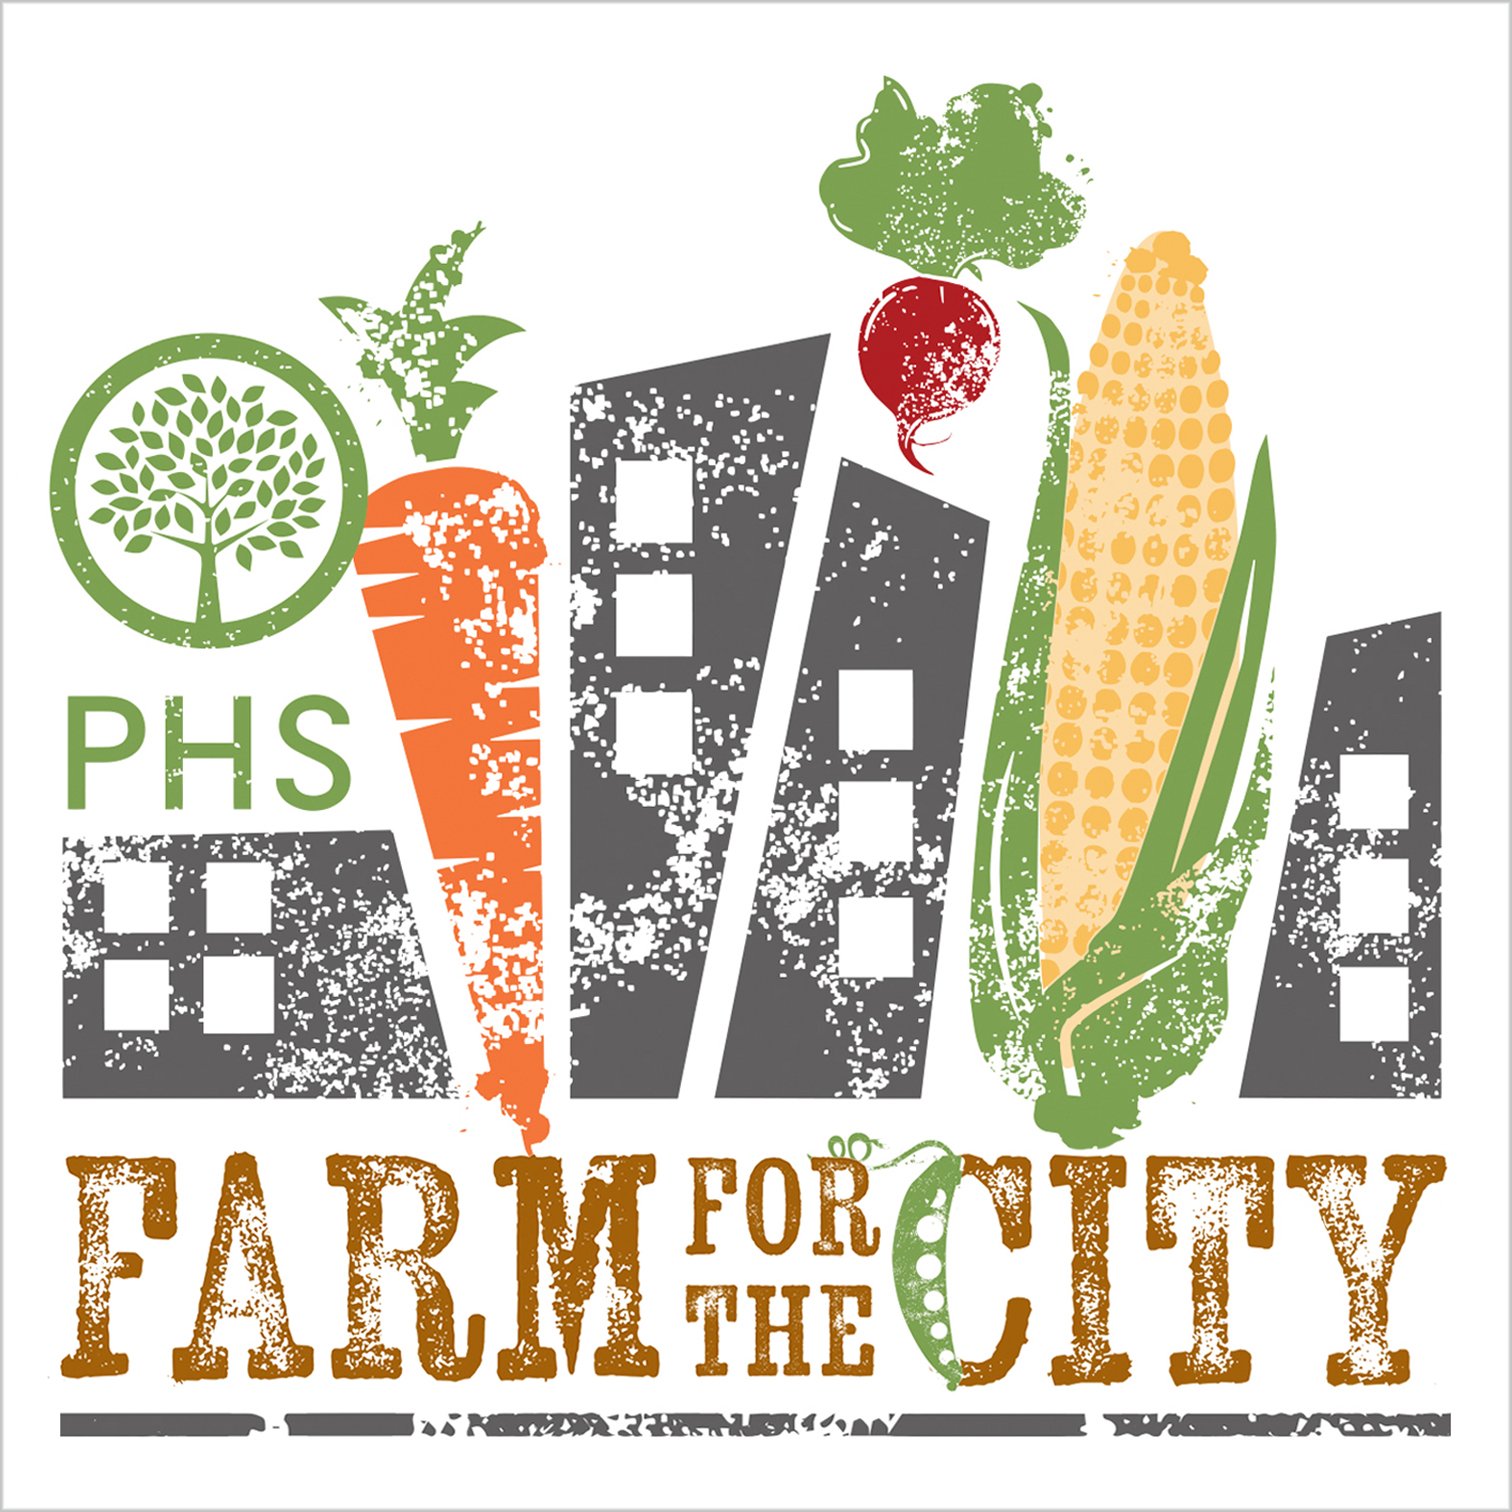 Logo for PHS Farm for the City, a temporary garden installation intended to bring attention to how community gardens can help provide food to those in need.